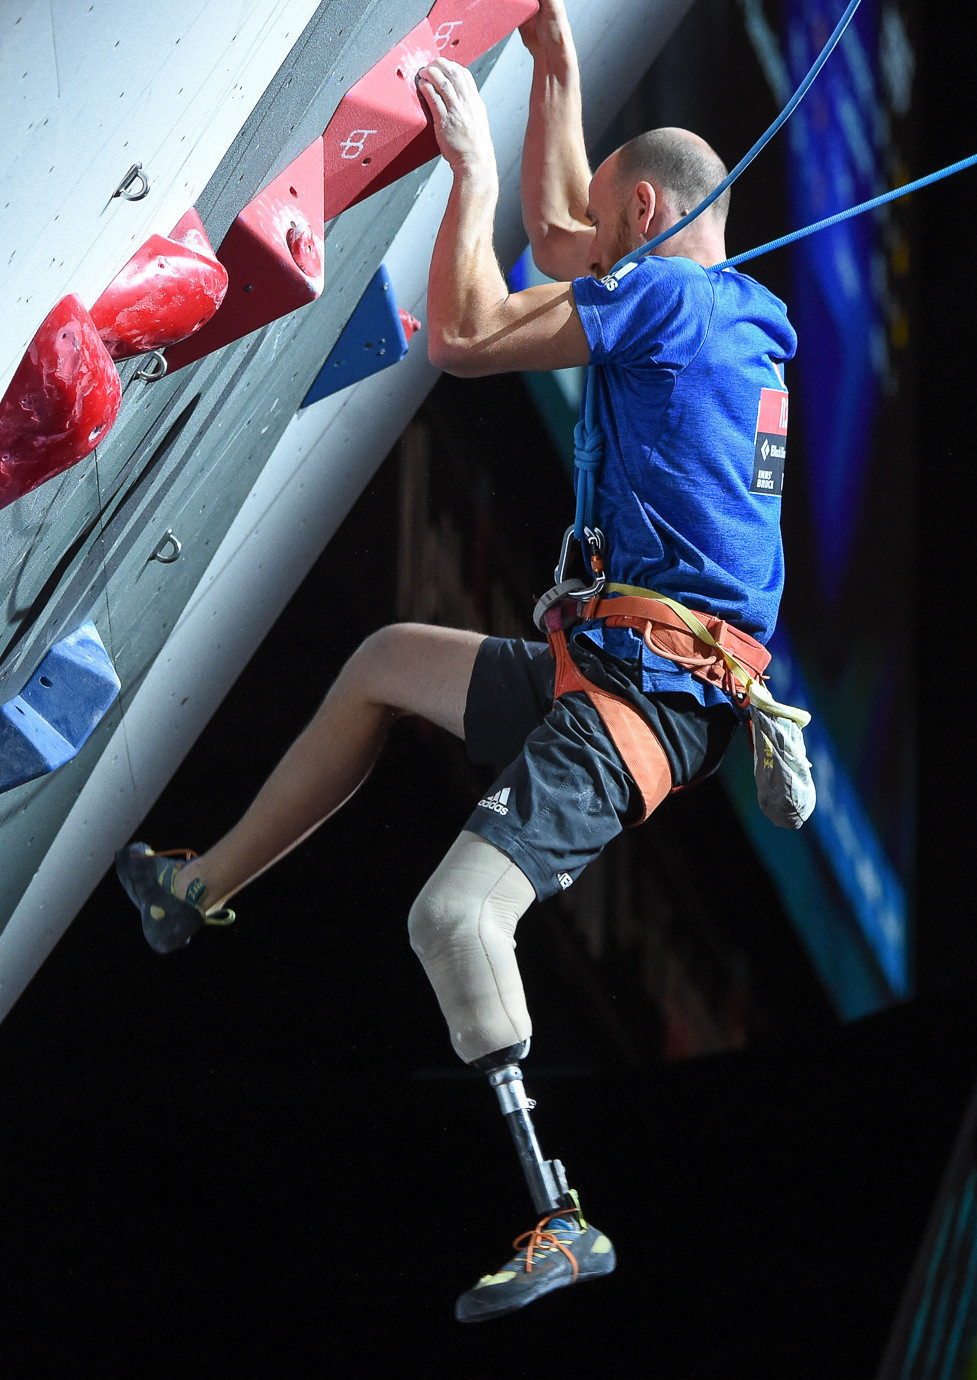 The International Federation of Sport Climbing is aiming to get Paraclimbing included at the Los Angeles 2028 Paralympics ©Getty Images